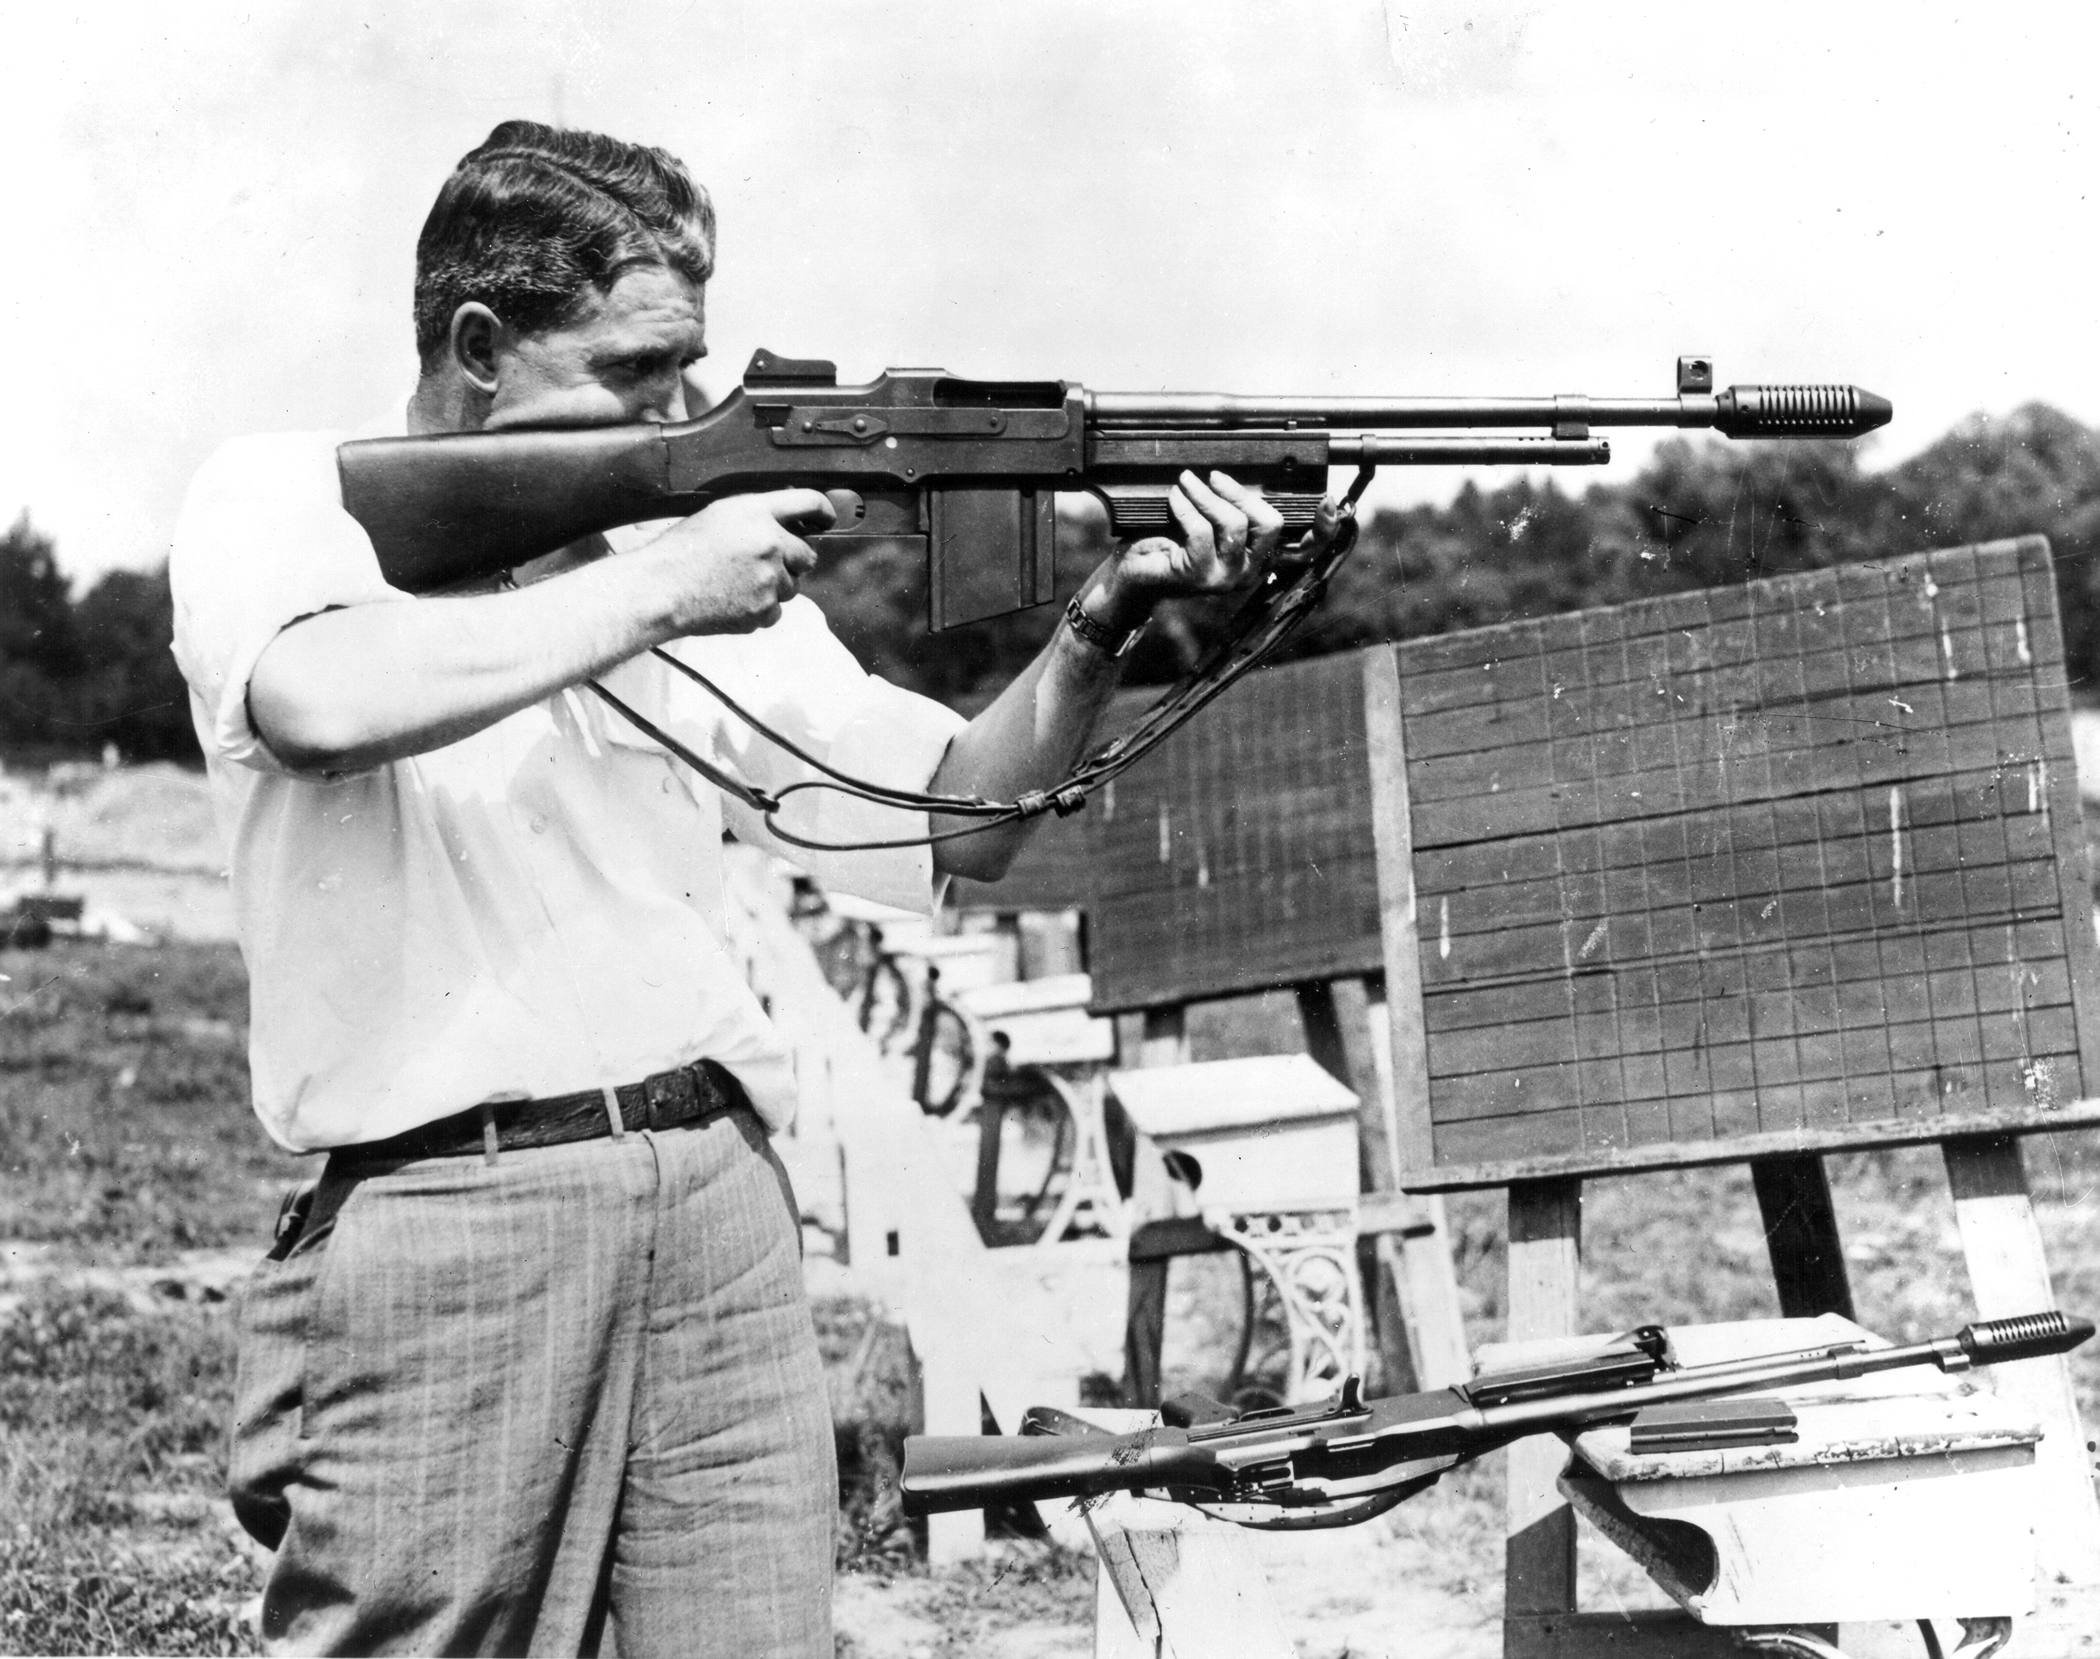 M1918 Browning Automatic Rifle | Military Wiki | FANDOM